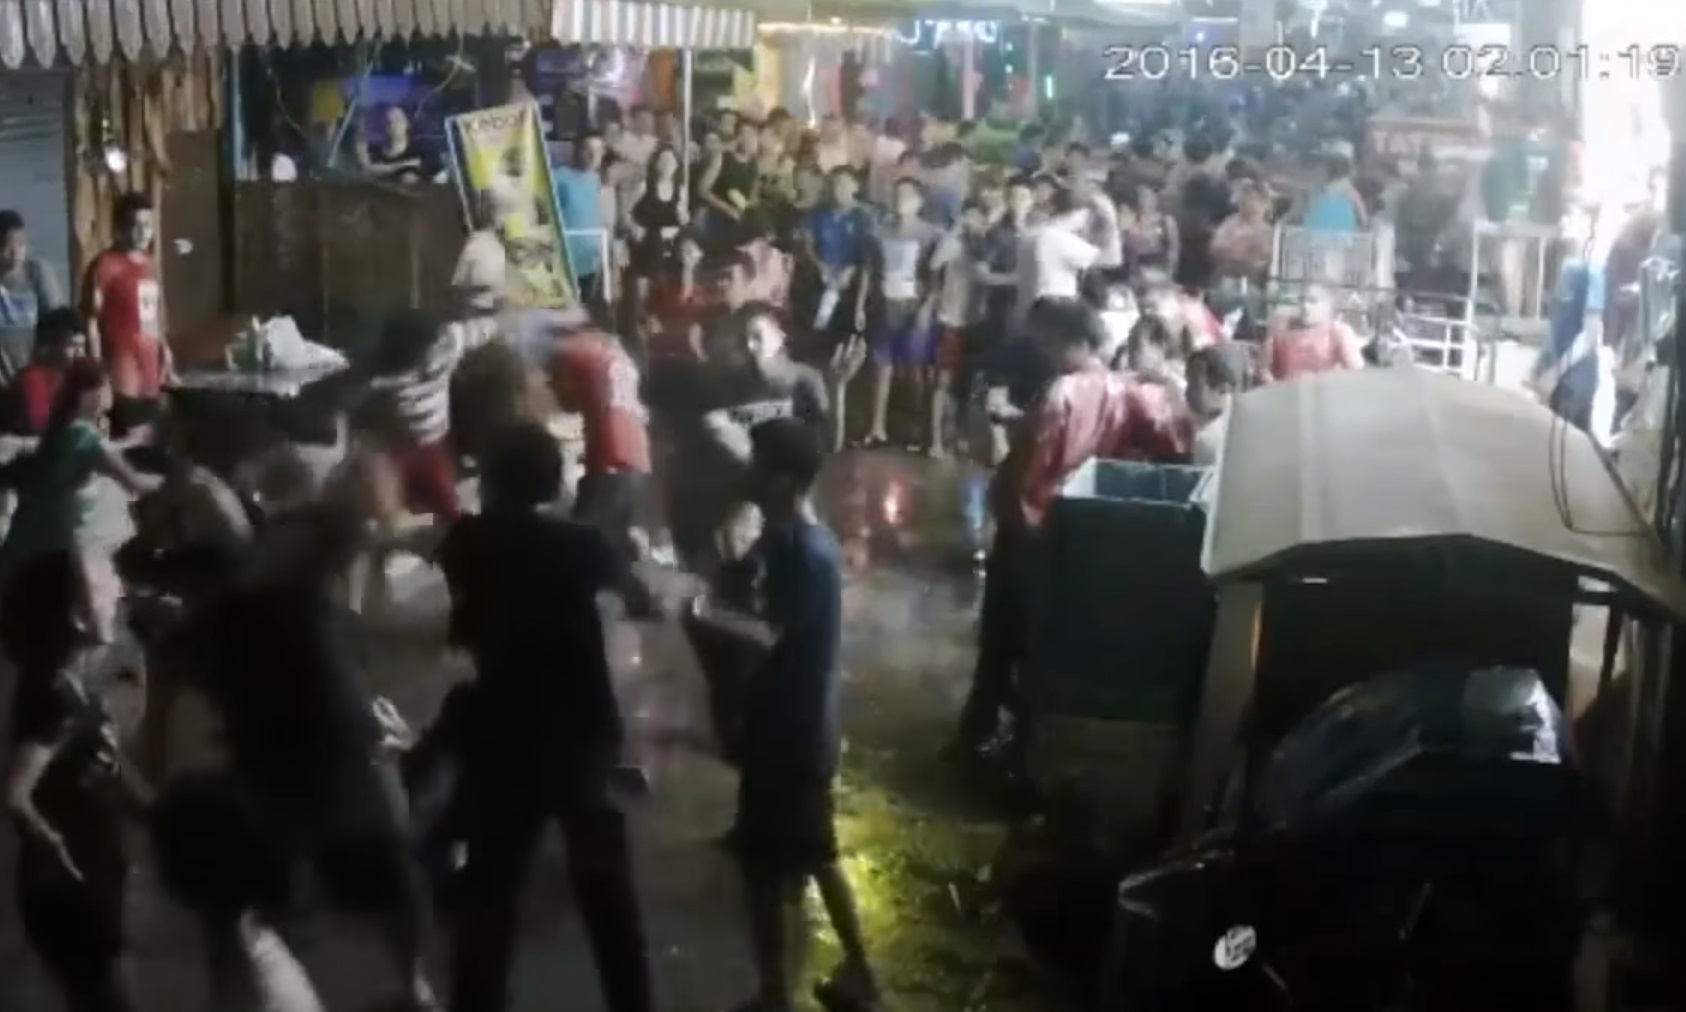 The attack happened on a busy street.